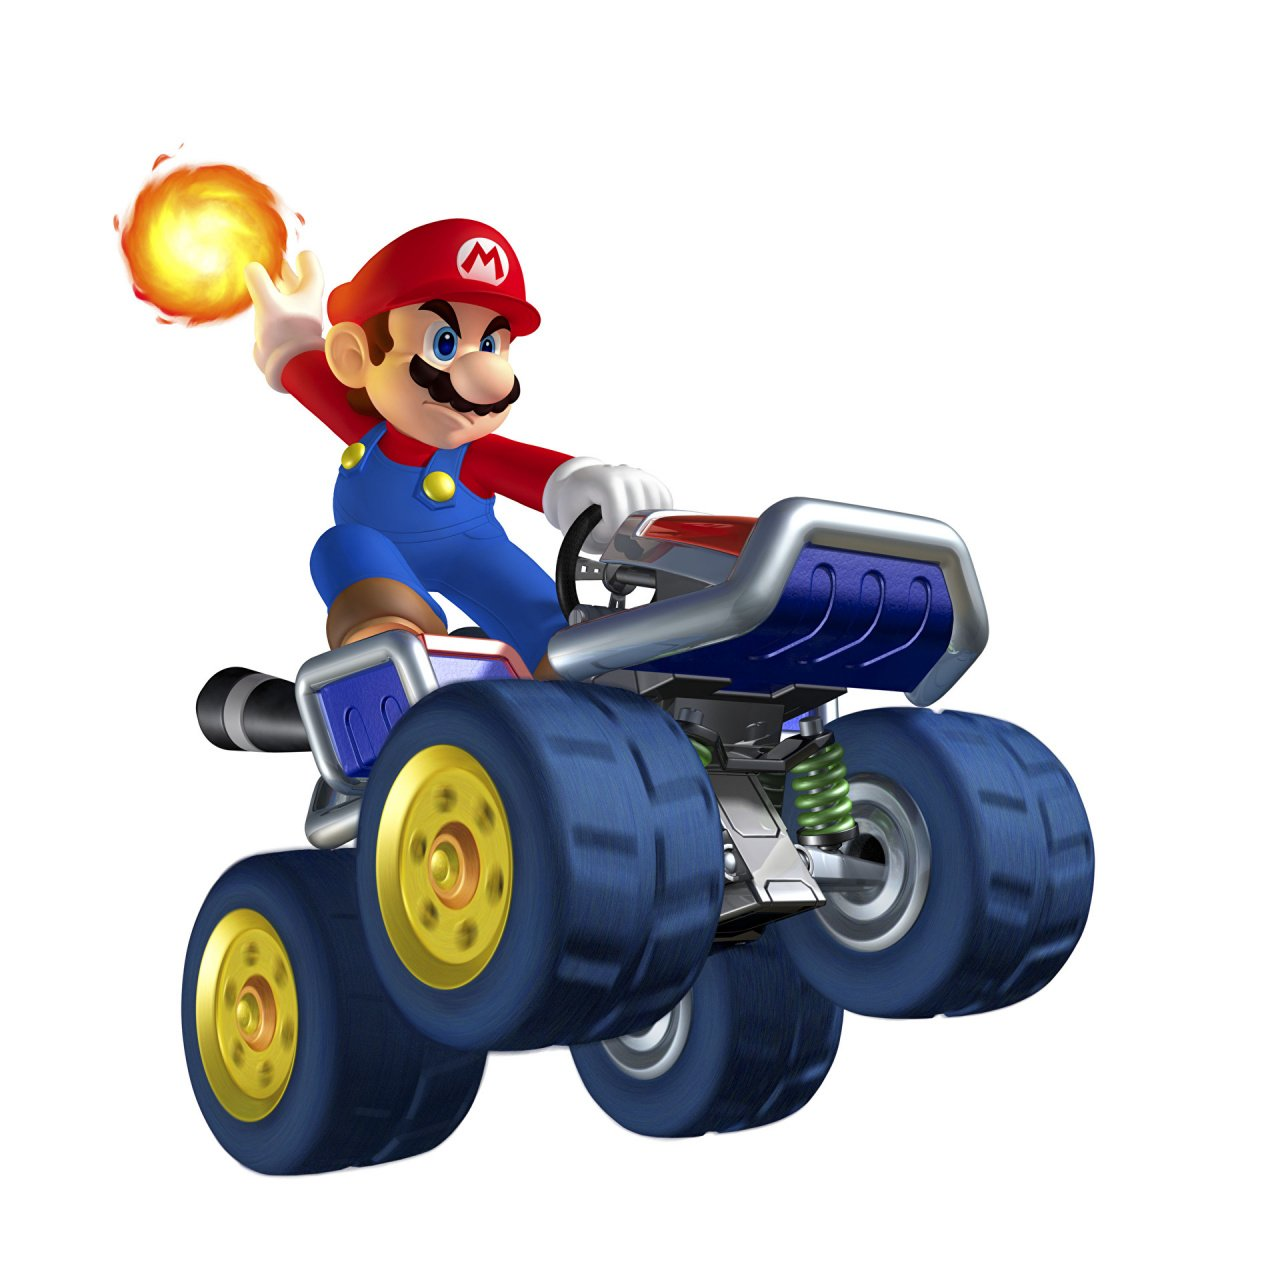 mario kart 7 39 fastest family 39 competition calls in a celeb nintendo life. Black Bedroom Furniture Sets. Home Design Ideas